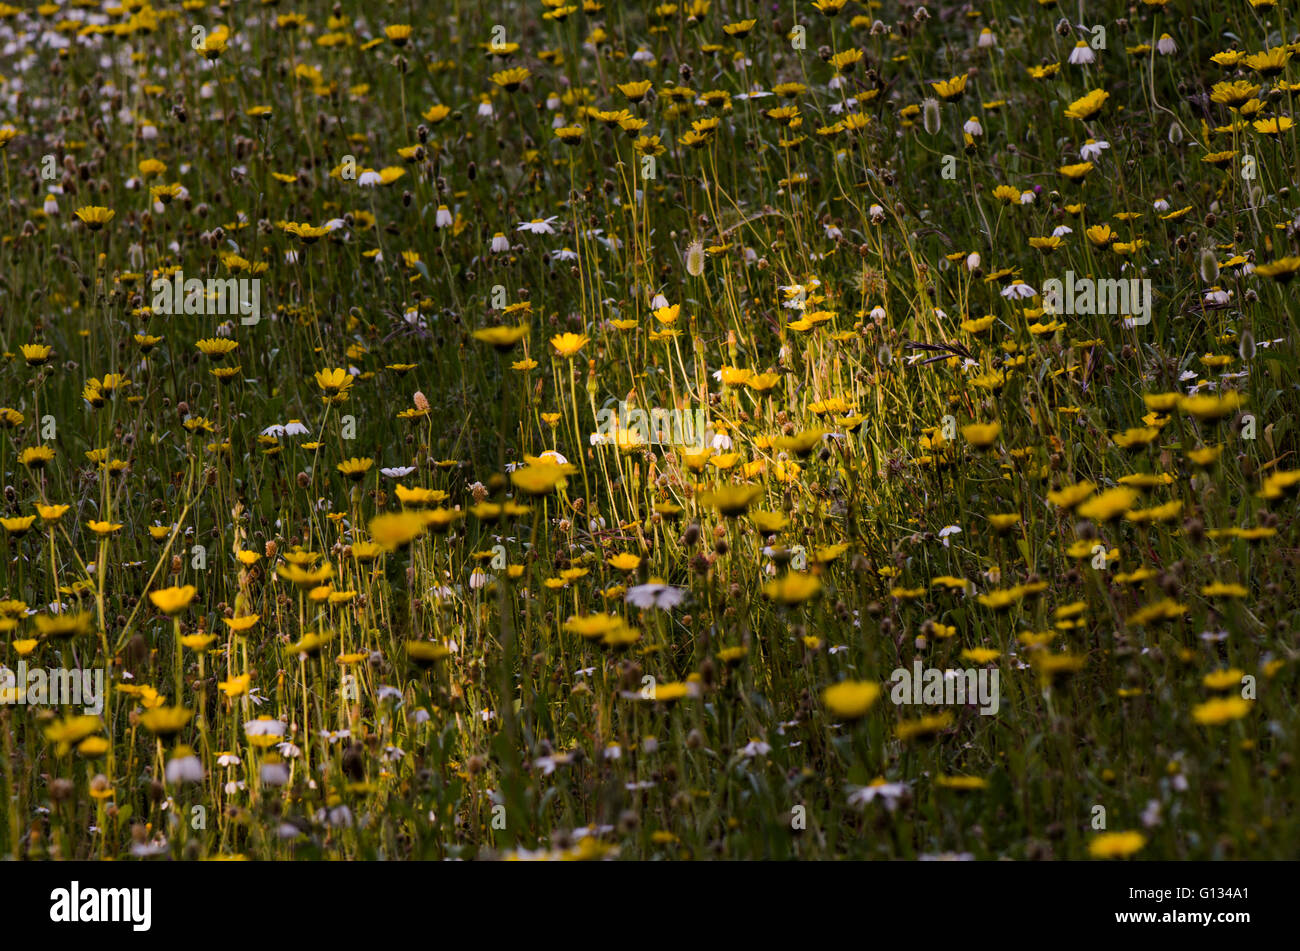 Sun beam falls on a meadow with yellow daisies flowers, Spain. - Stock Image